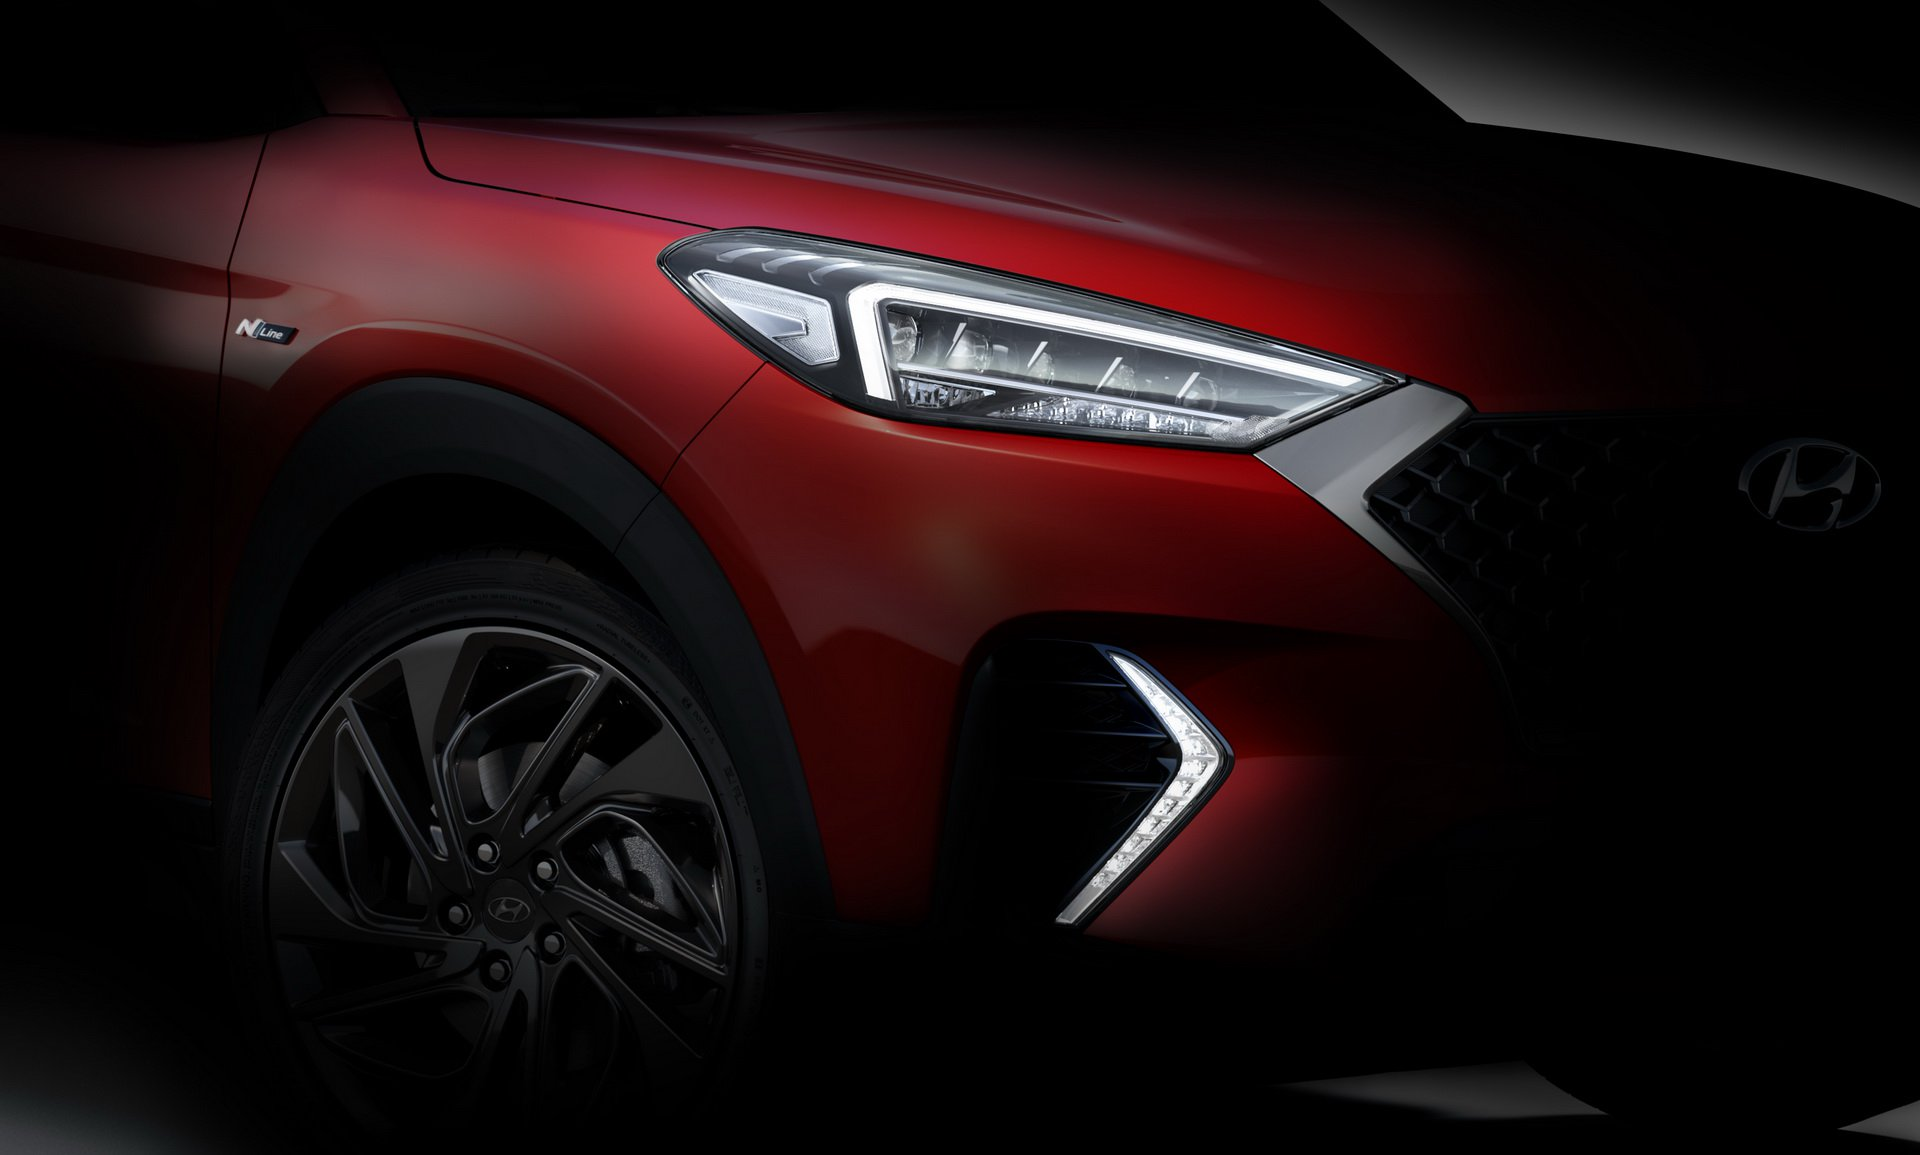 58 New 2020 Hyundai Tucson Rumors